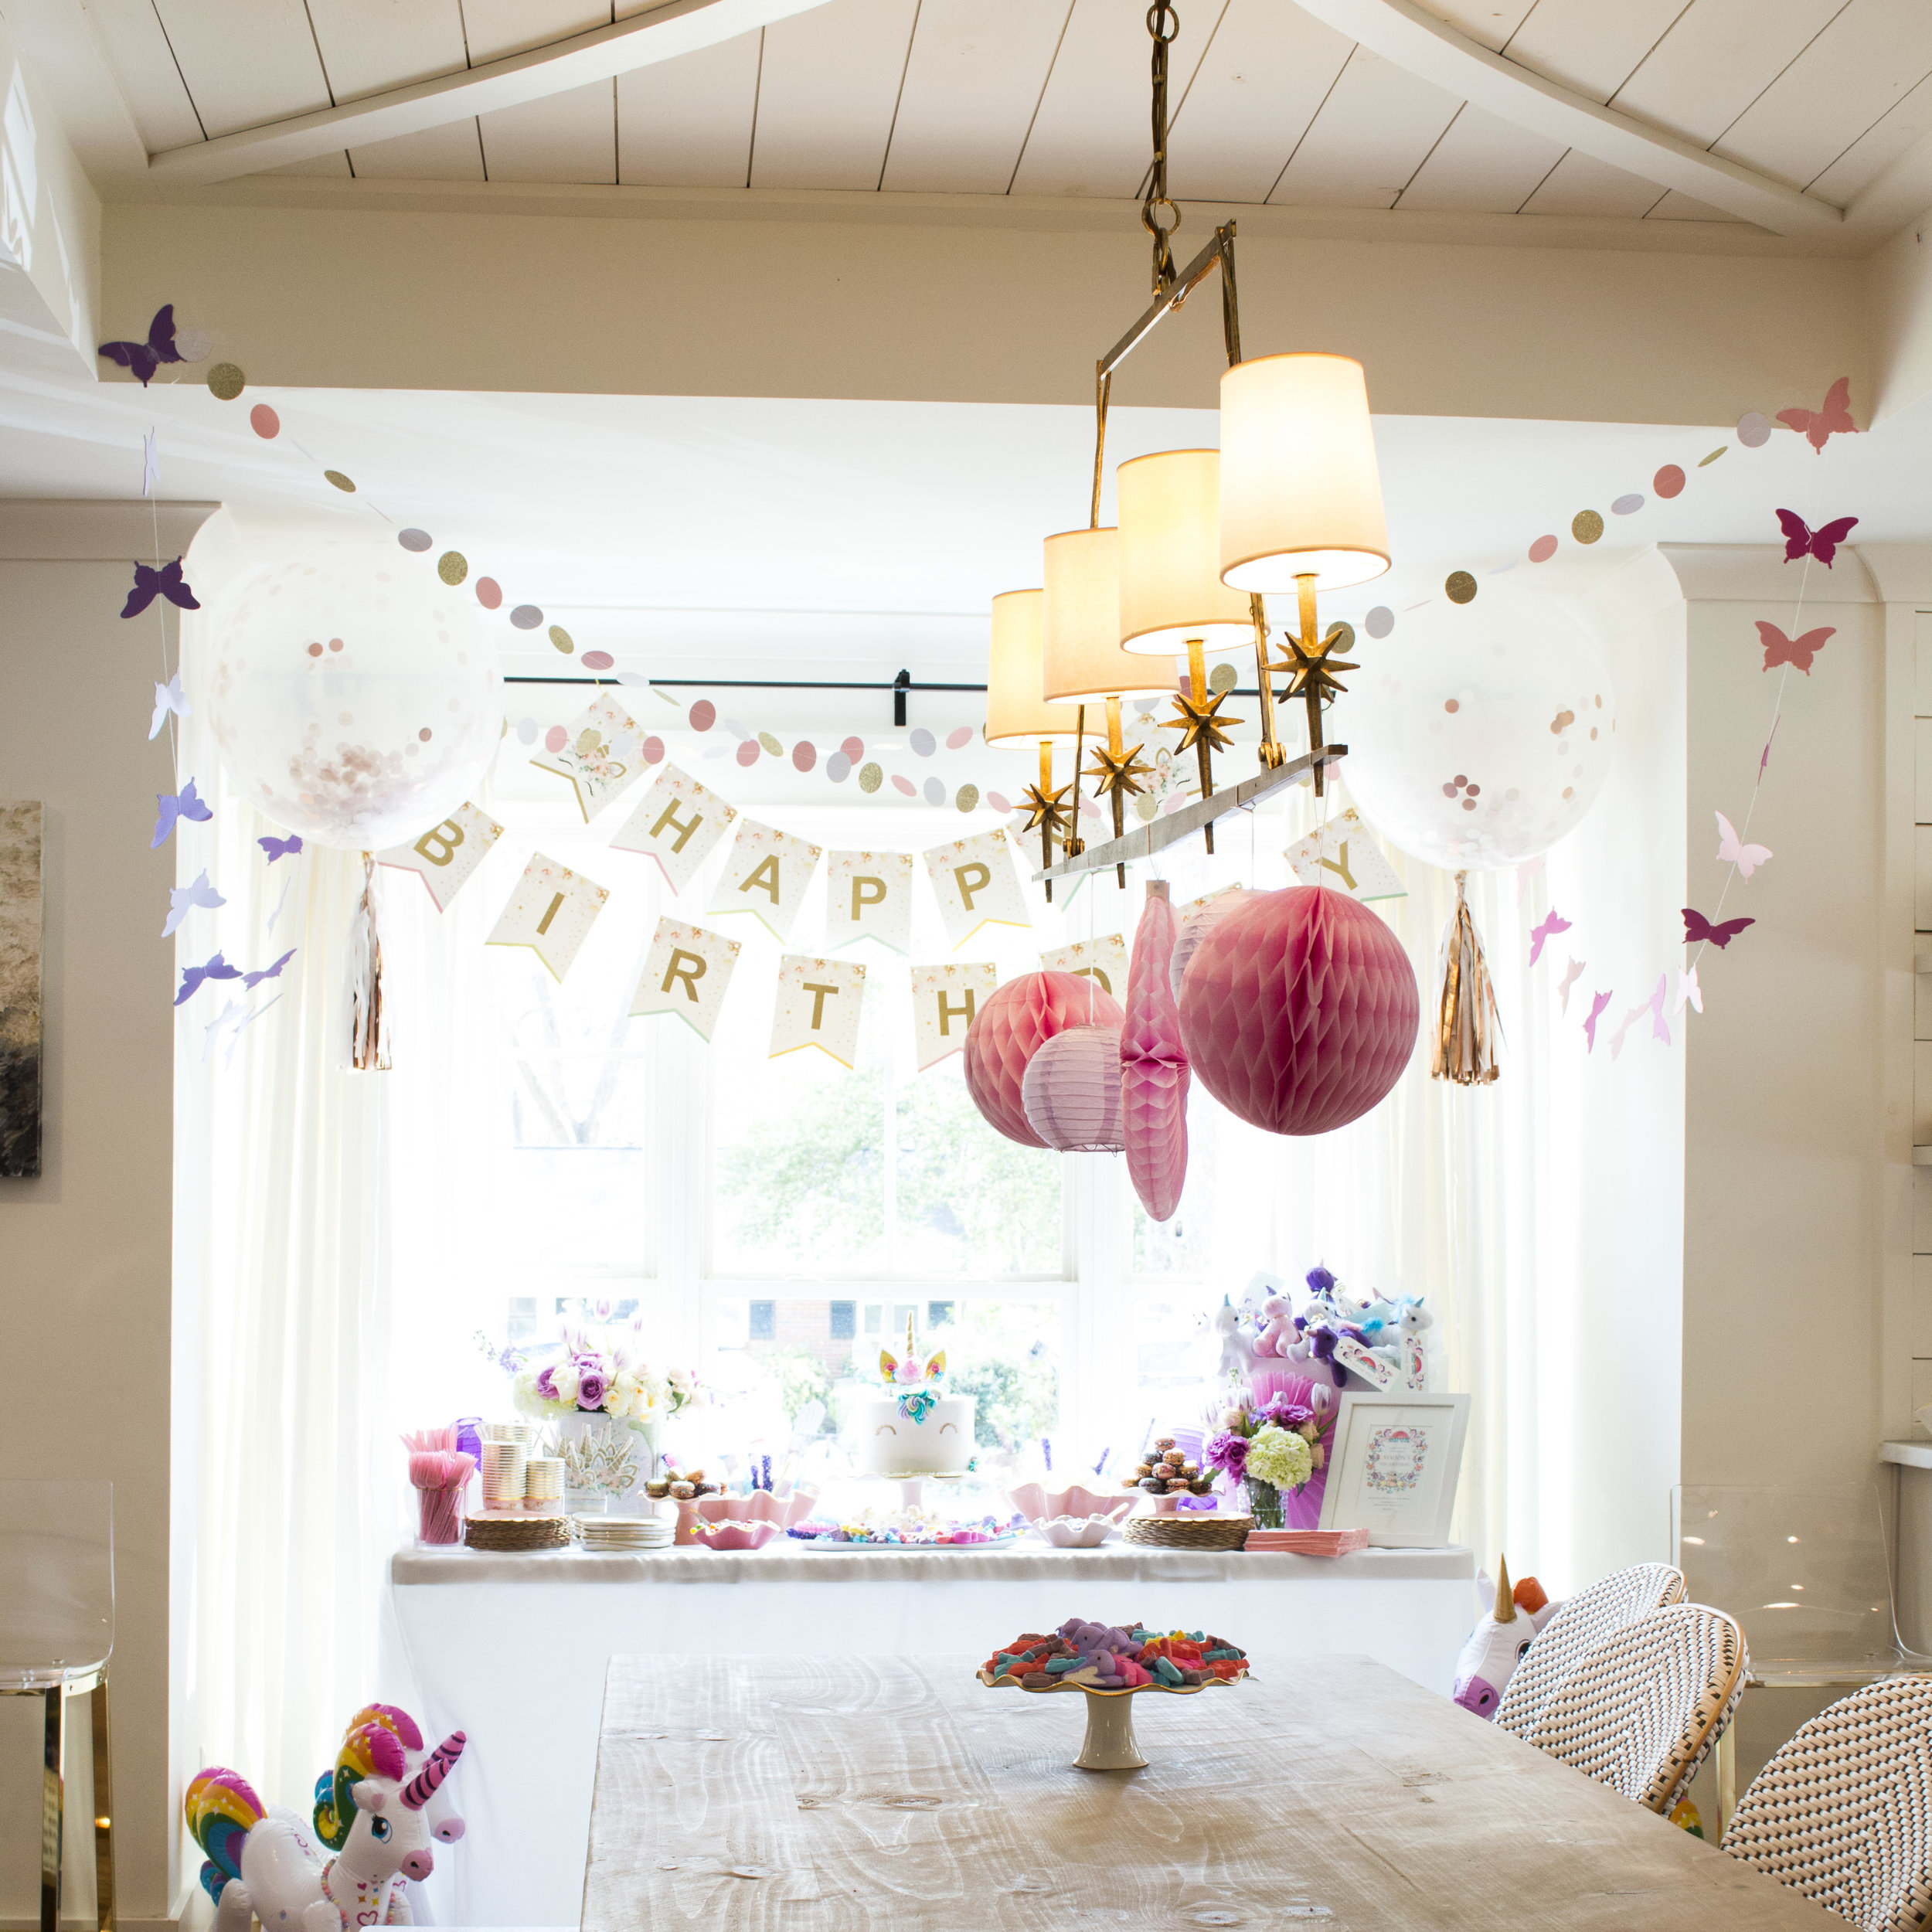 Shop the chandelier decorations  here . Photo by Graciela Blevins.